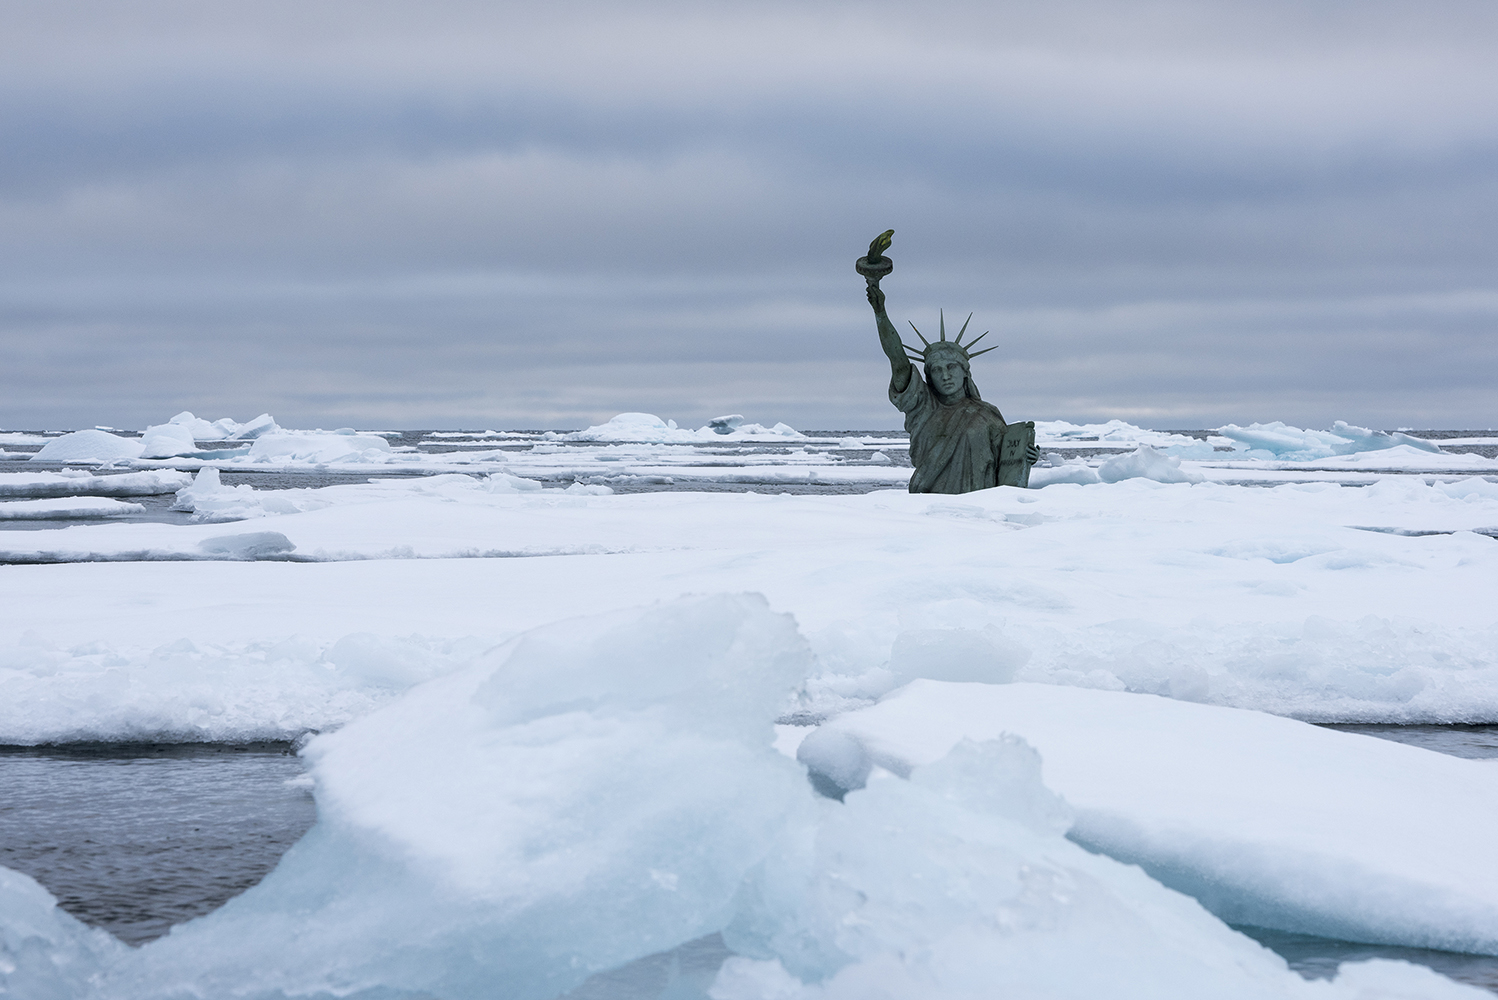 Statue of Liberty in the Arctic Ocean